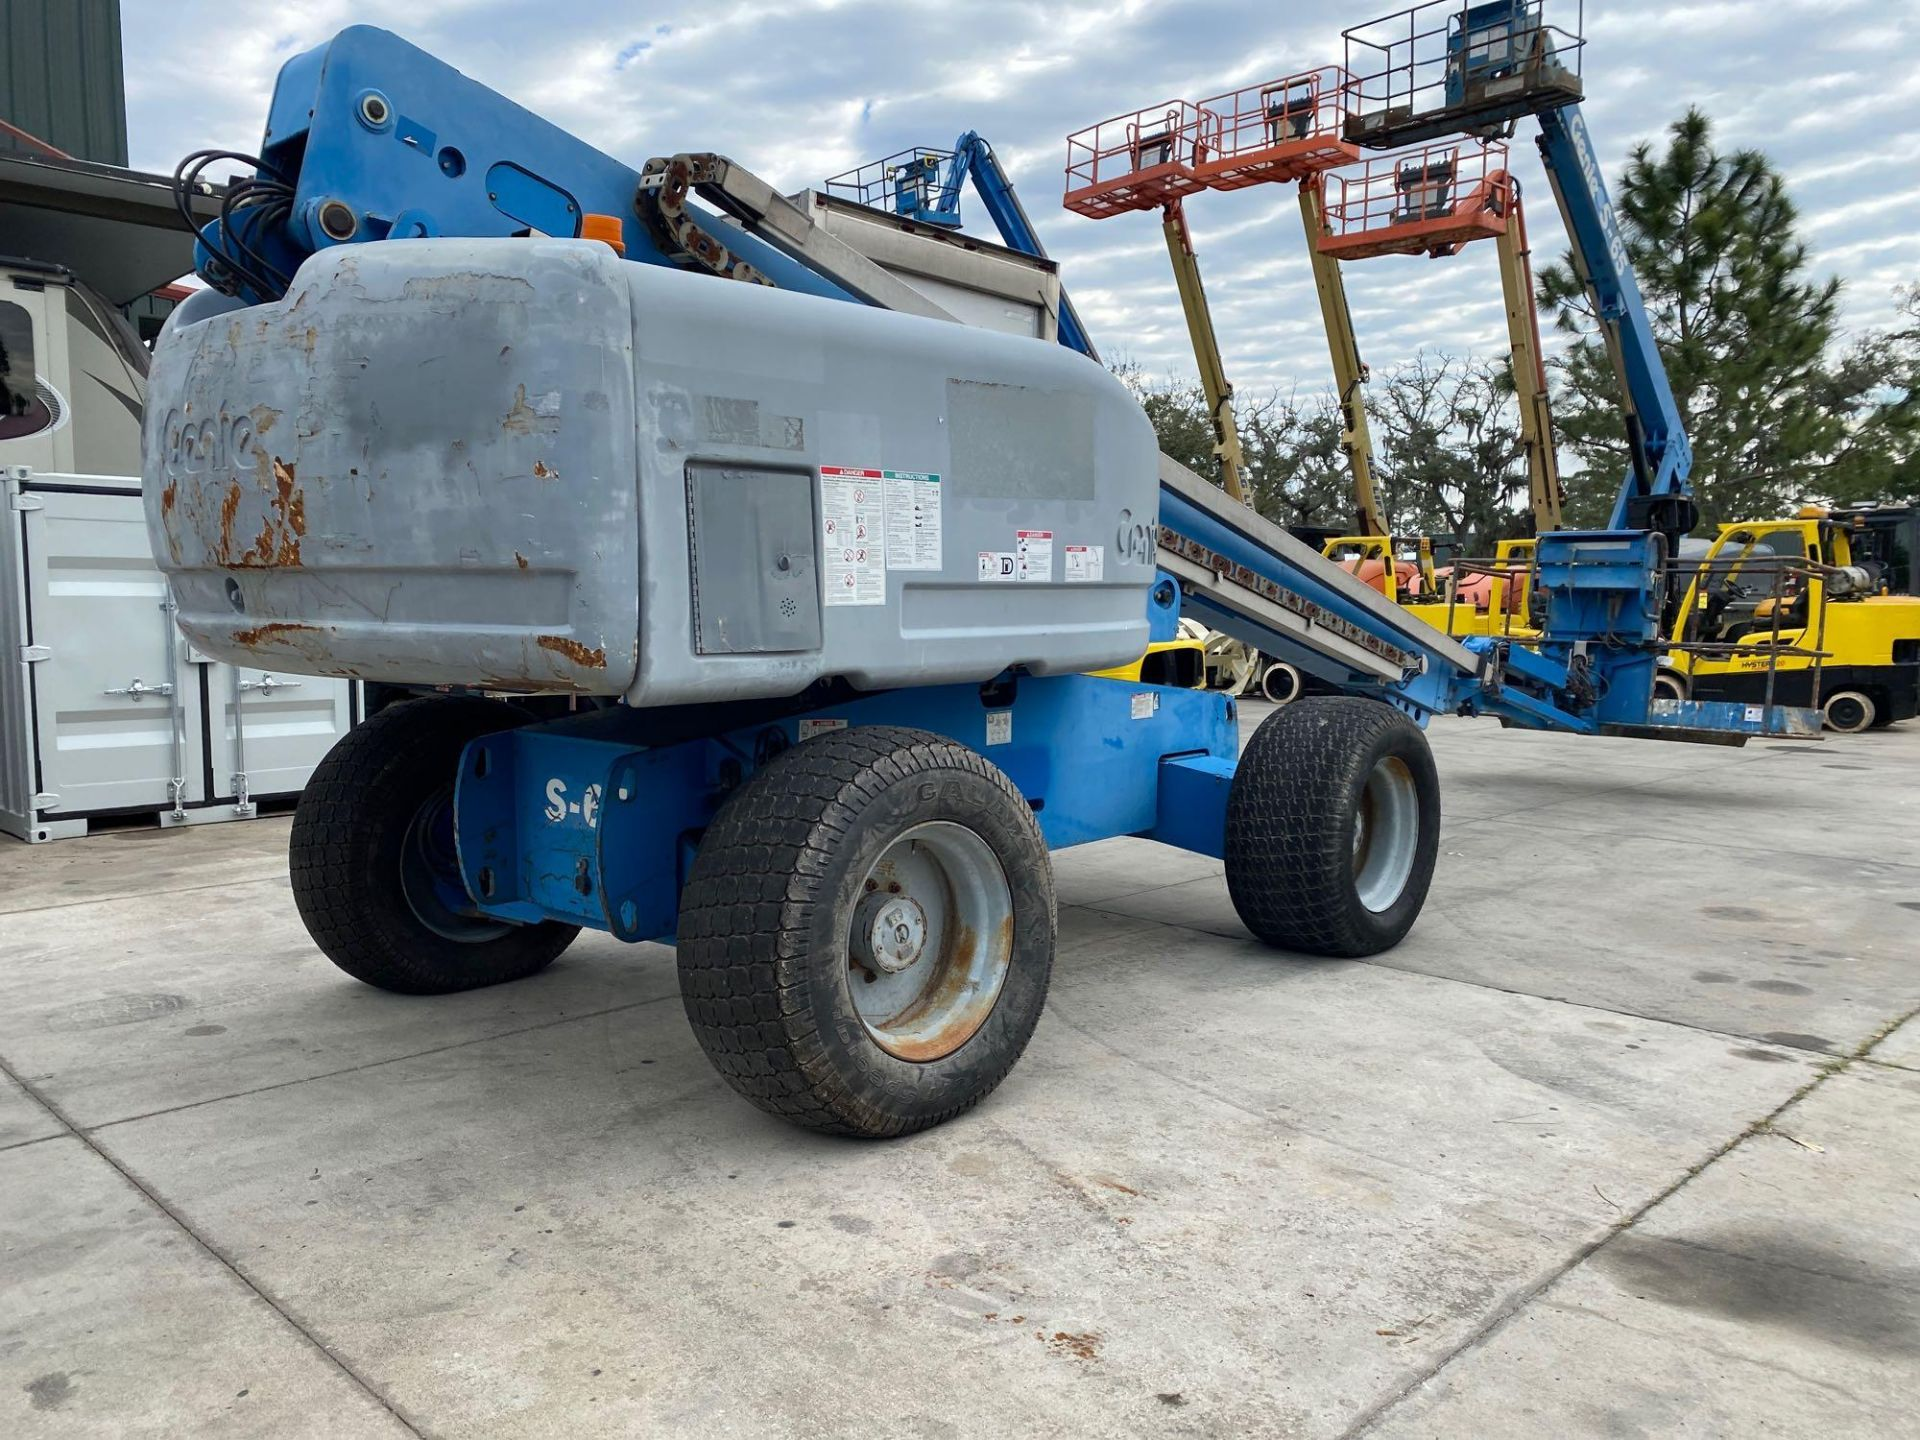 Lot 64 - GENIE S-65 BOOM LIFT, ARTICULATING, DIESEL, 65' PLATFORM HEIGHT, PNEUMATIC TIRES, 4x4, RUNS AMD OPER